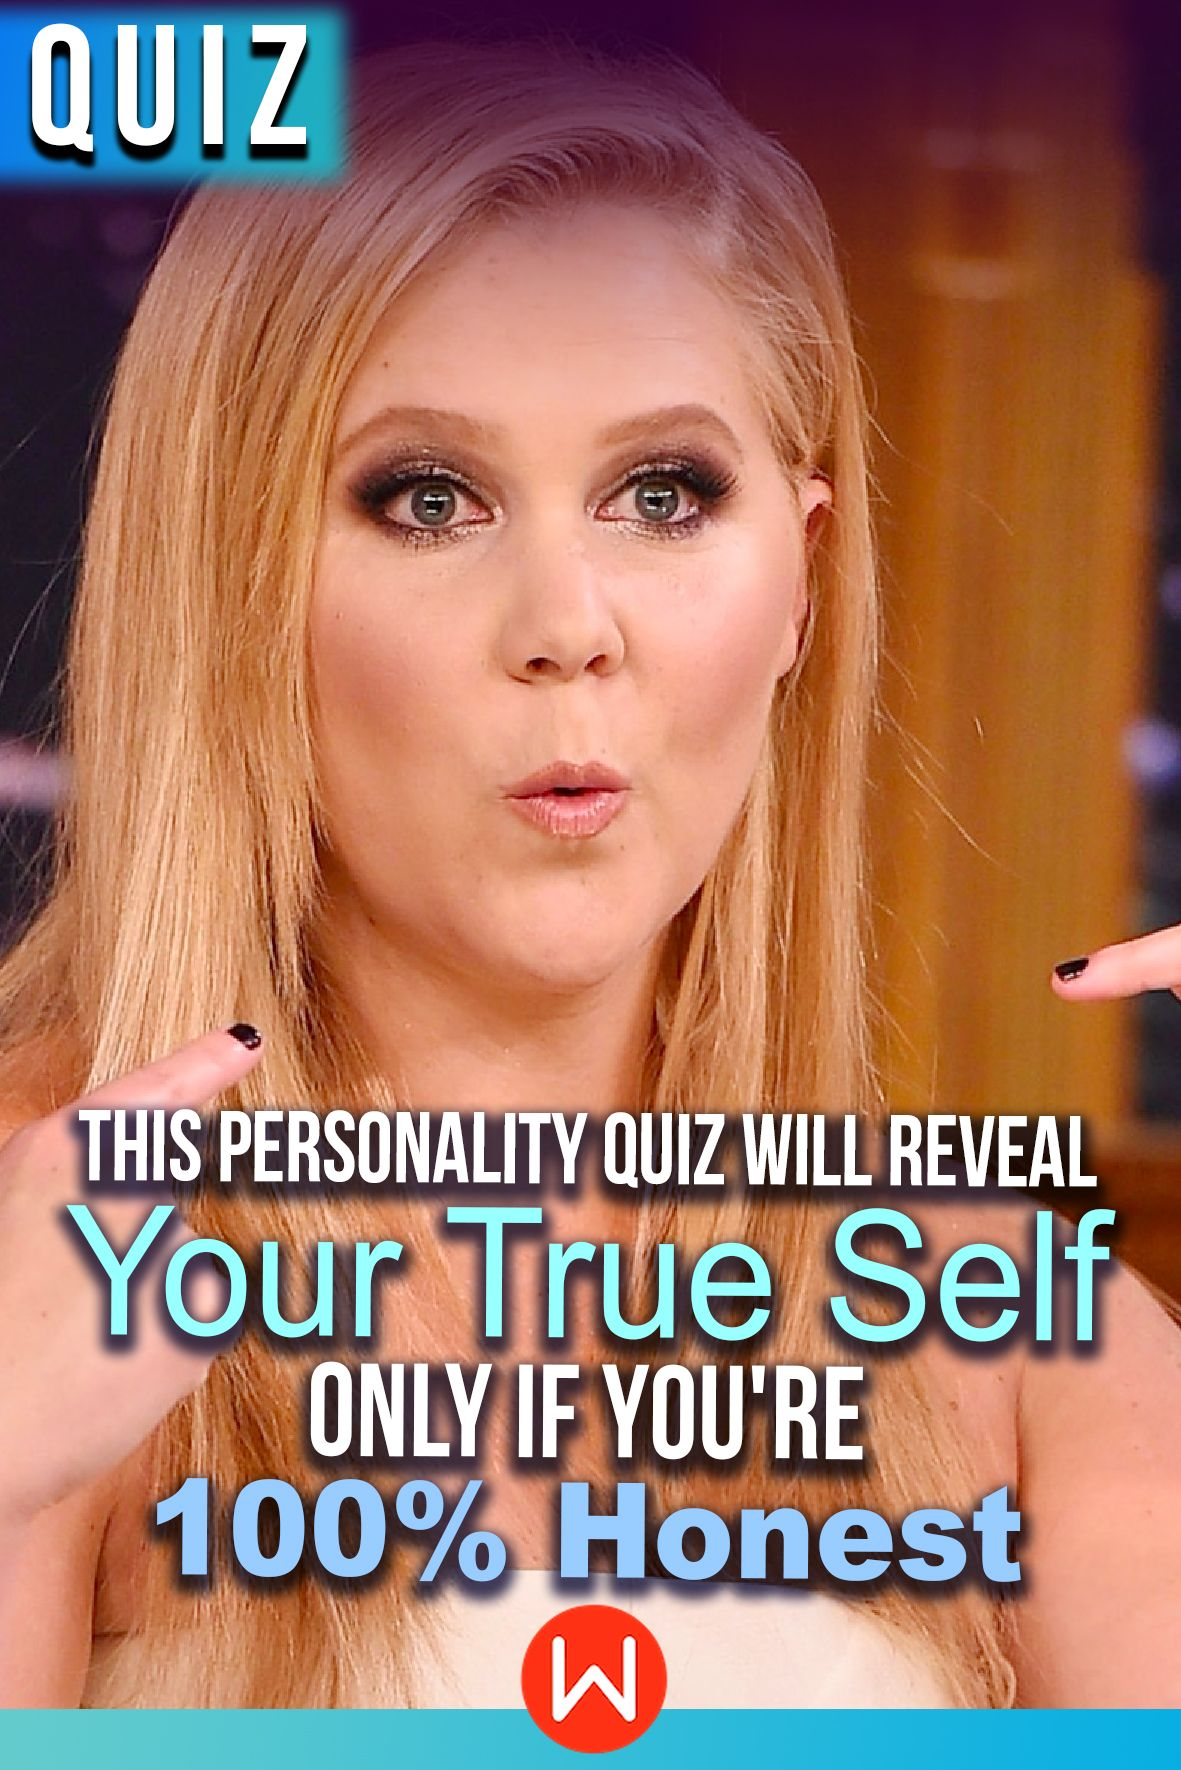 This Personality Quiz Will Reveal Your True Self Only If You Re 100 Honest